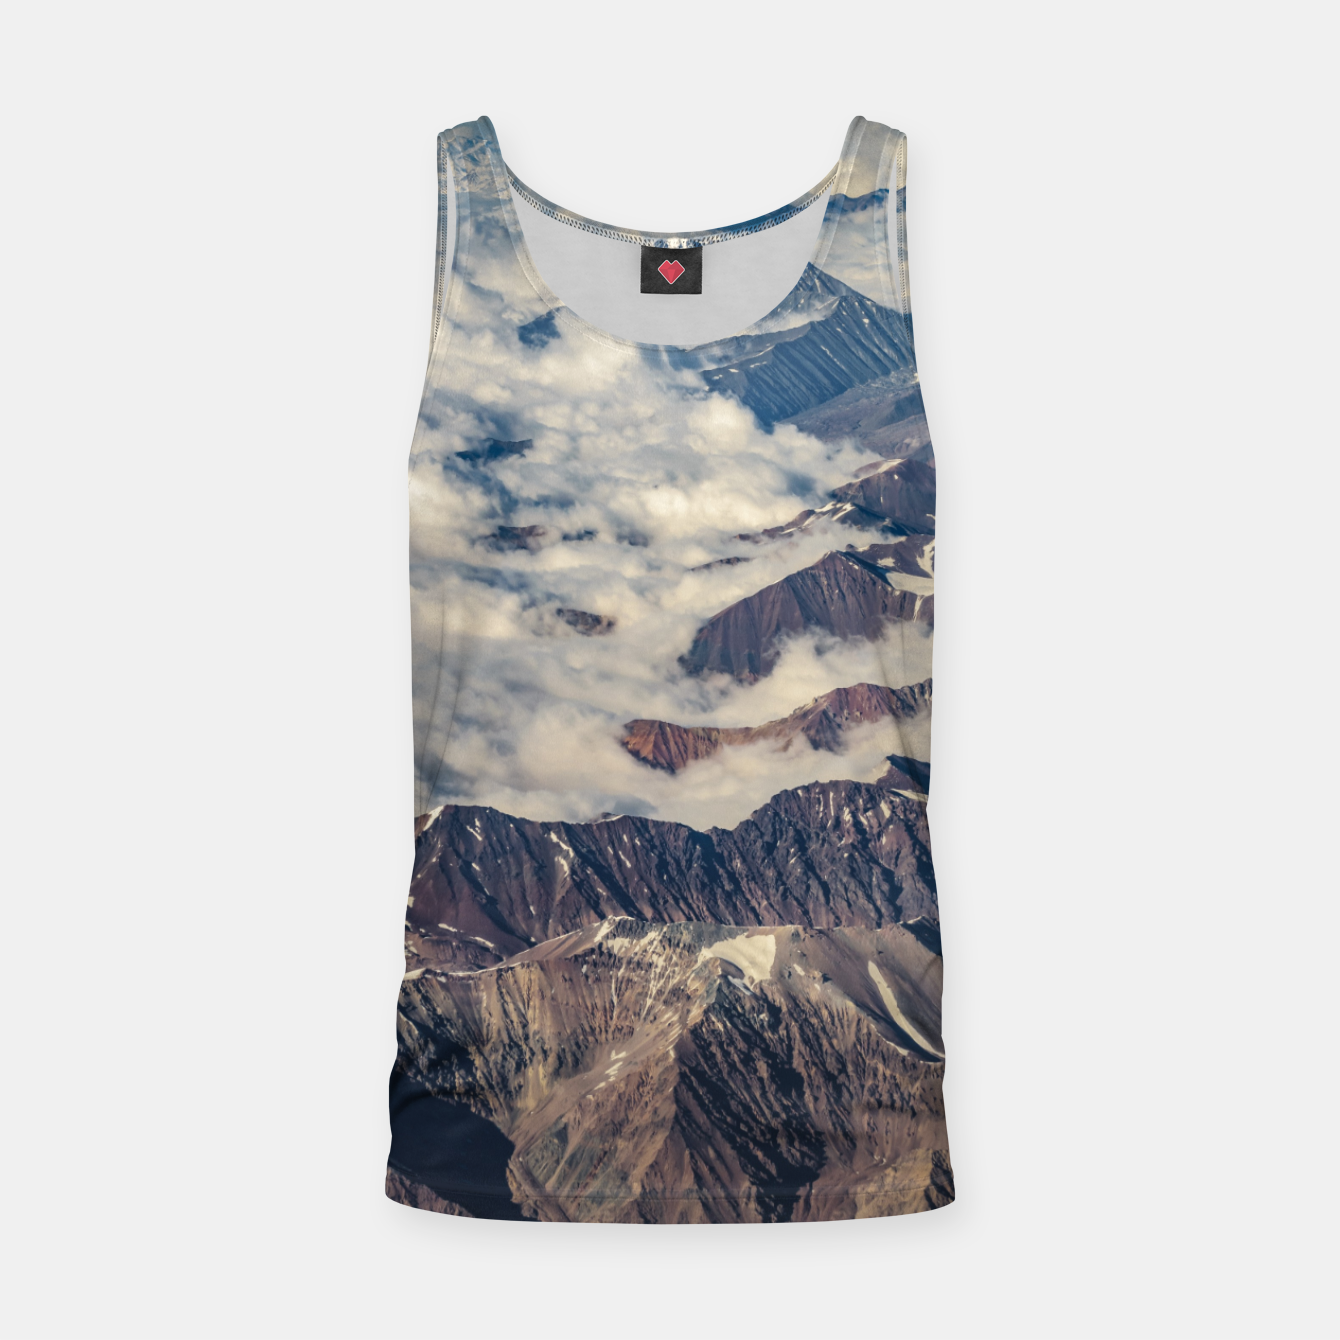 Zdjęcie Andes Mountains Aerial View, Chile Tank Top - Live Heroes